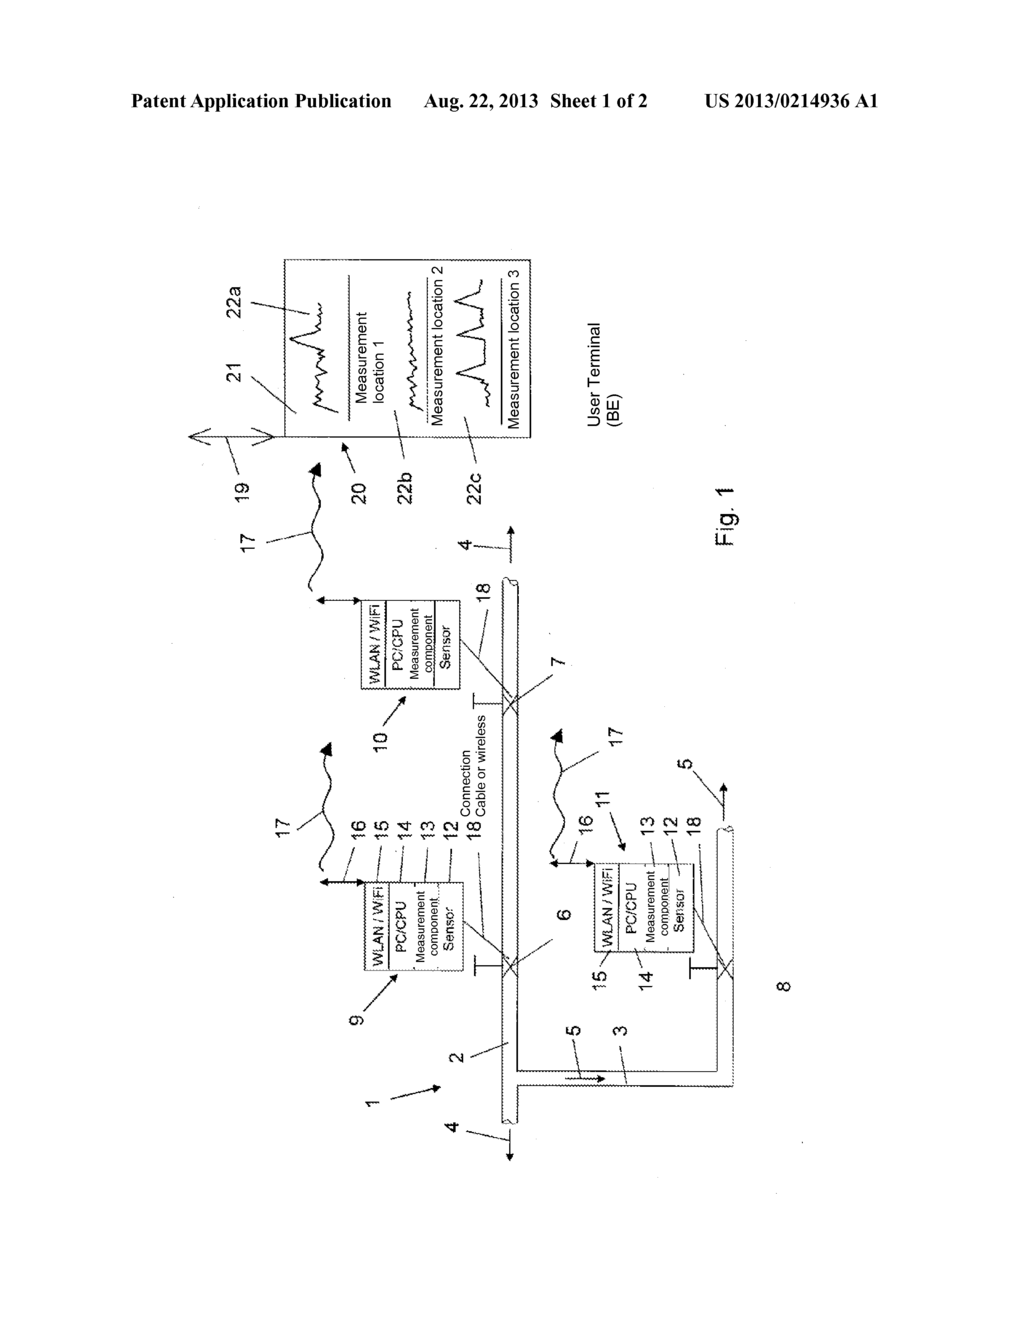 Device For Leak Detection In A Branched Pipe System Of Water Alarm Panel Wiring Diagram Network Schematic And Image 02